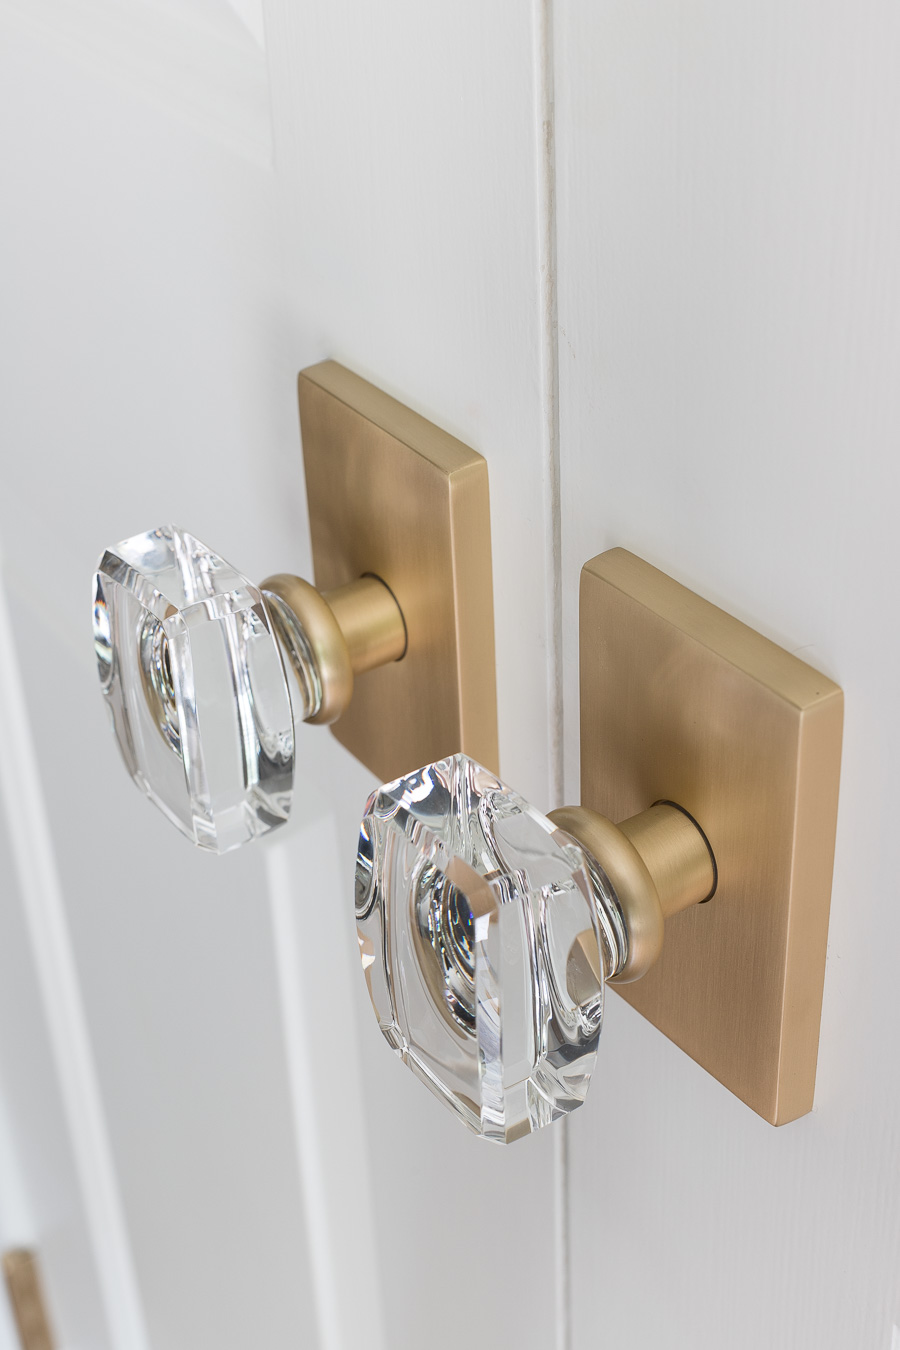 Beautiful door hardware that's the perfect mix of traditional and modern! Love the crystal knob and brass plate combination!